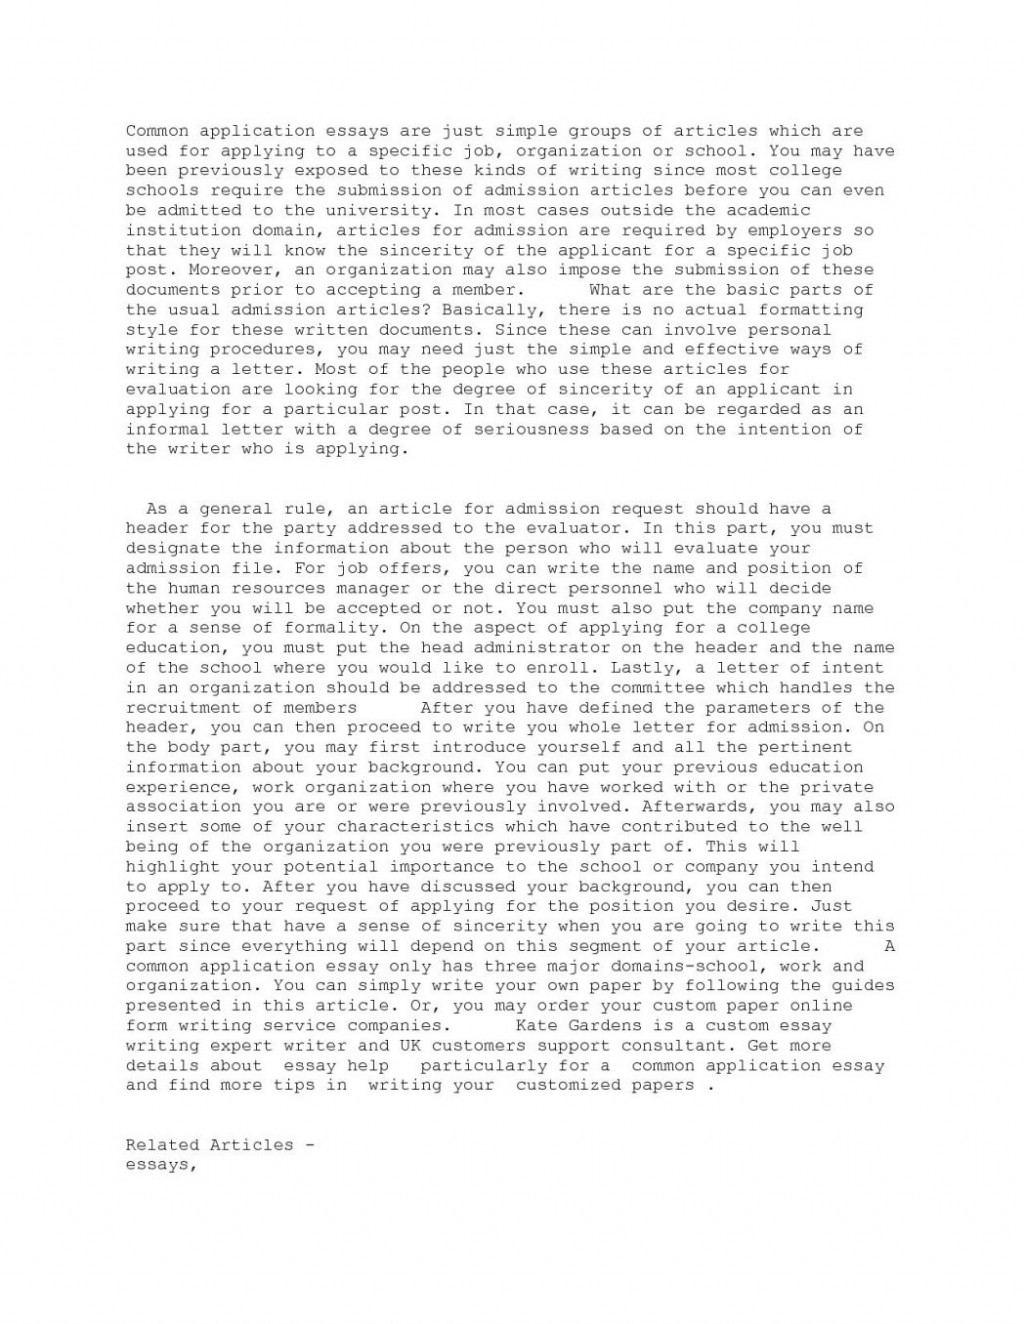 007 College Essay Examples Common App Writings And Essays Transfer Example Sample How To Wri Application Topics 1048x1356 Outstanding Ideas Option 2 2017 Large